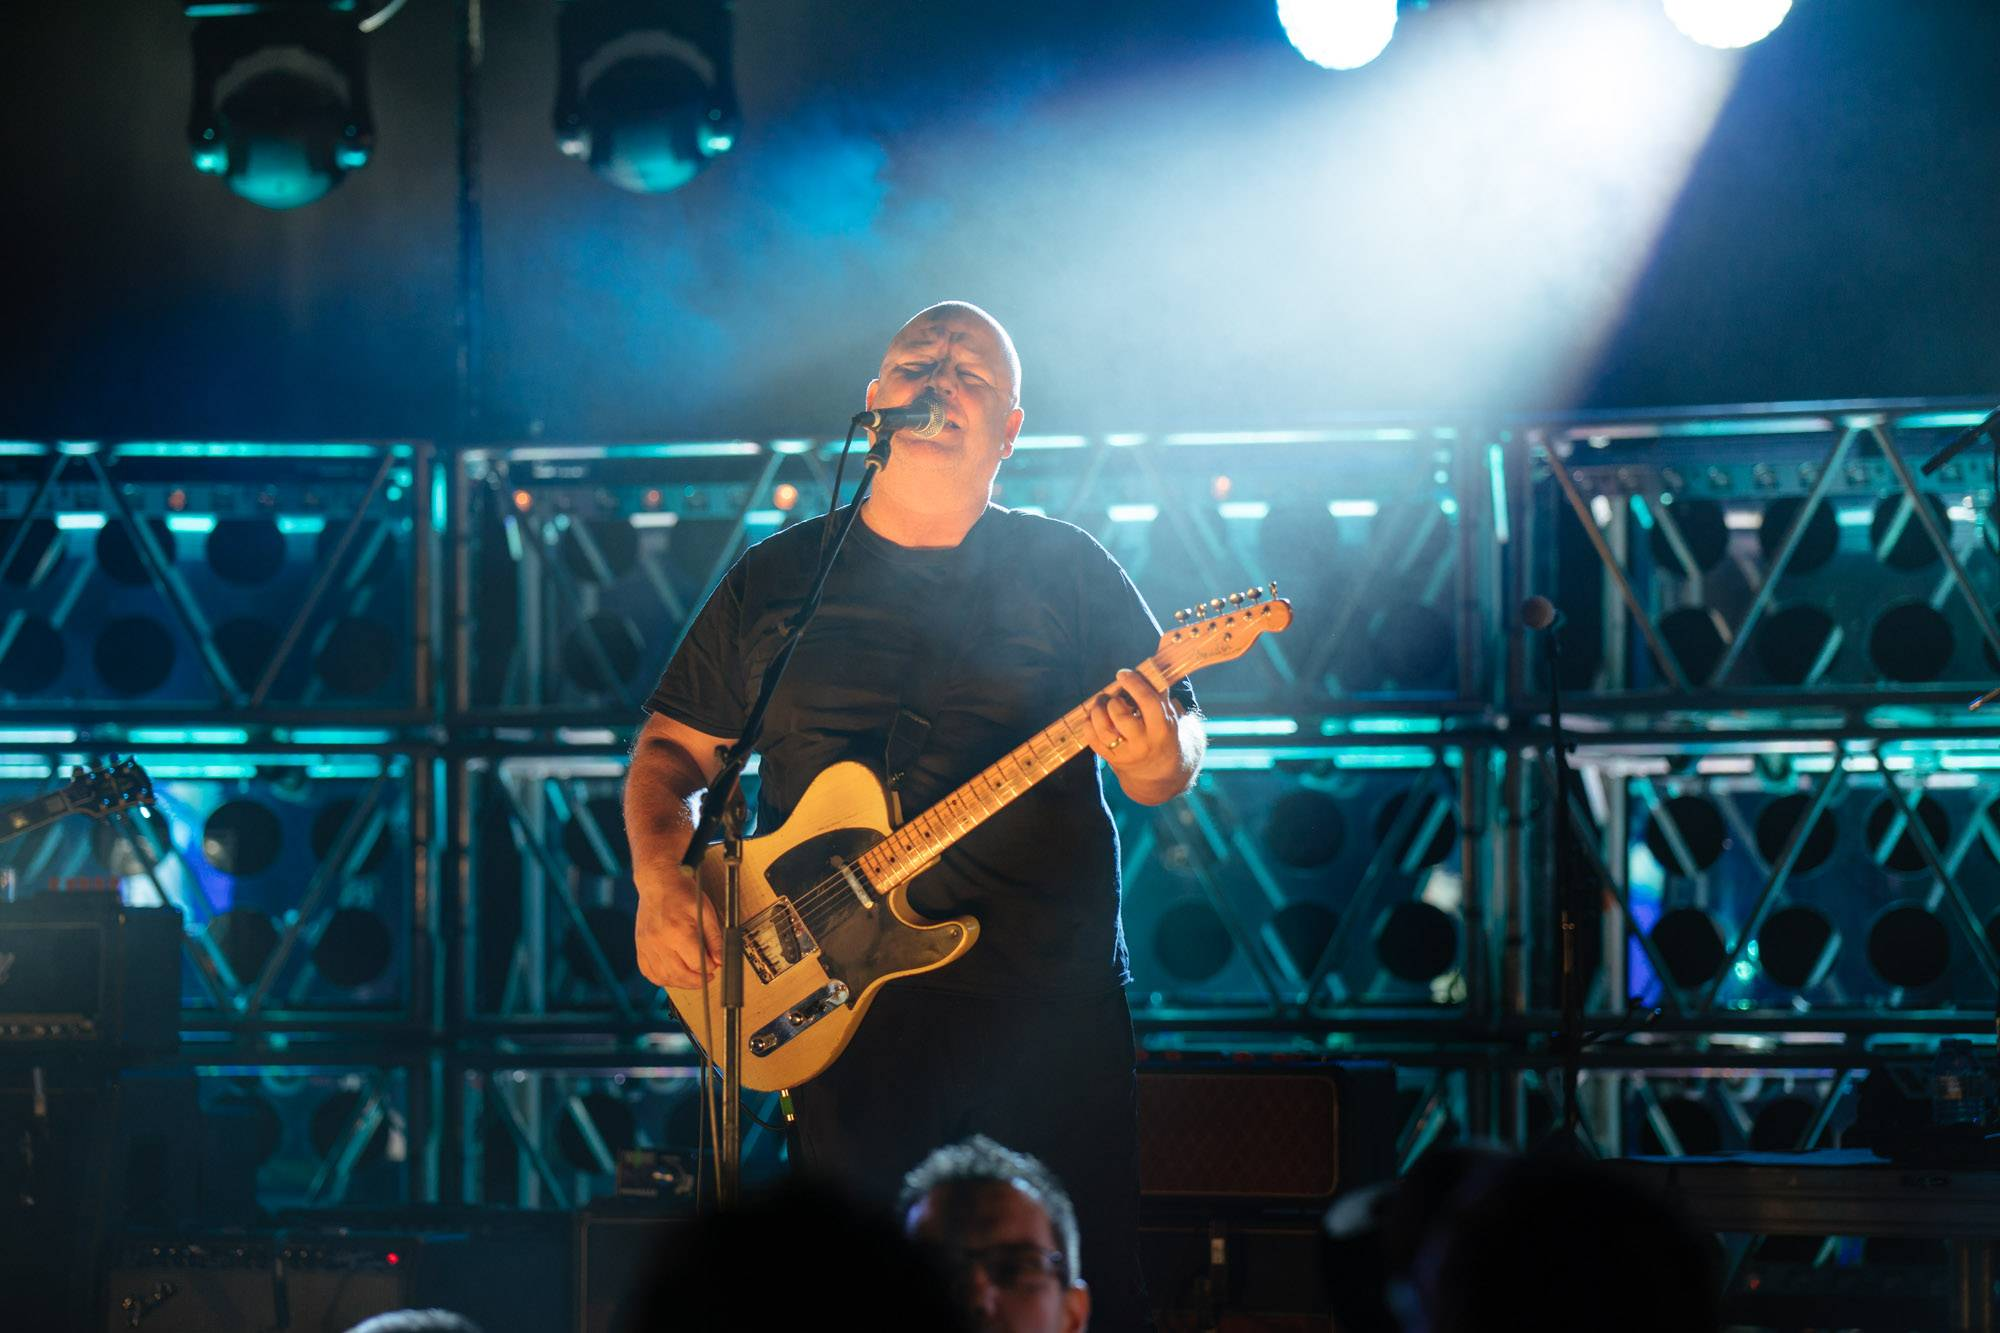 Pixies at Queen Elizabeth Theatre, Vancouver, Dec 4 2016. Dhruv Govil photo.